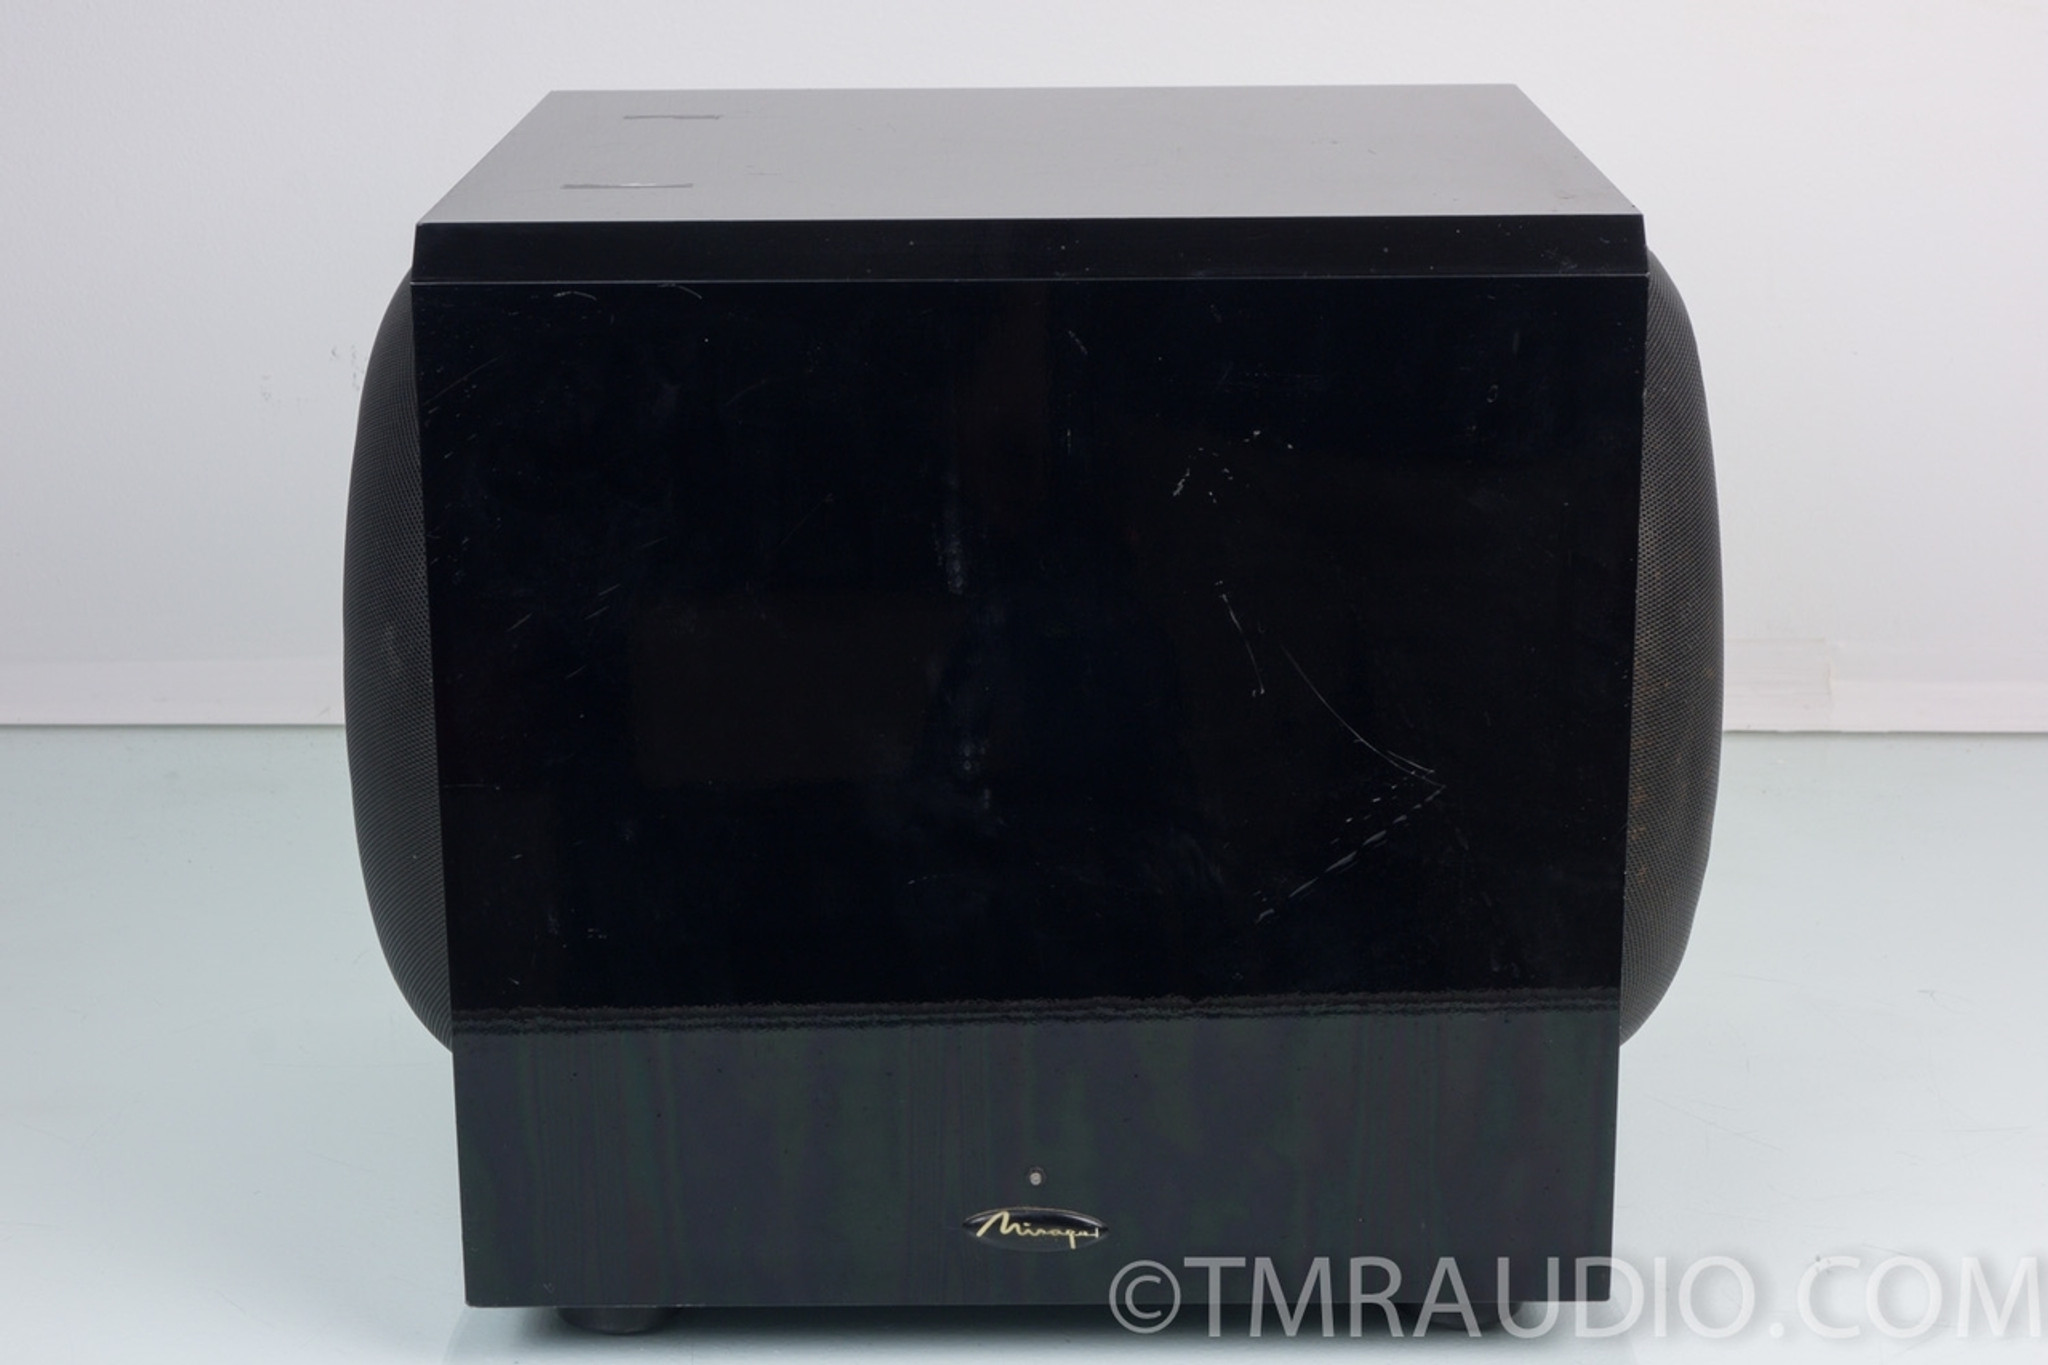 Mirage Ss 1500 Substrata Powered Subwoofer As Is The